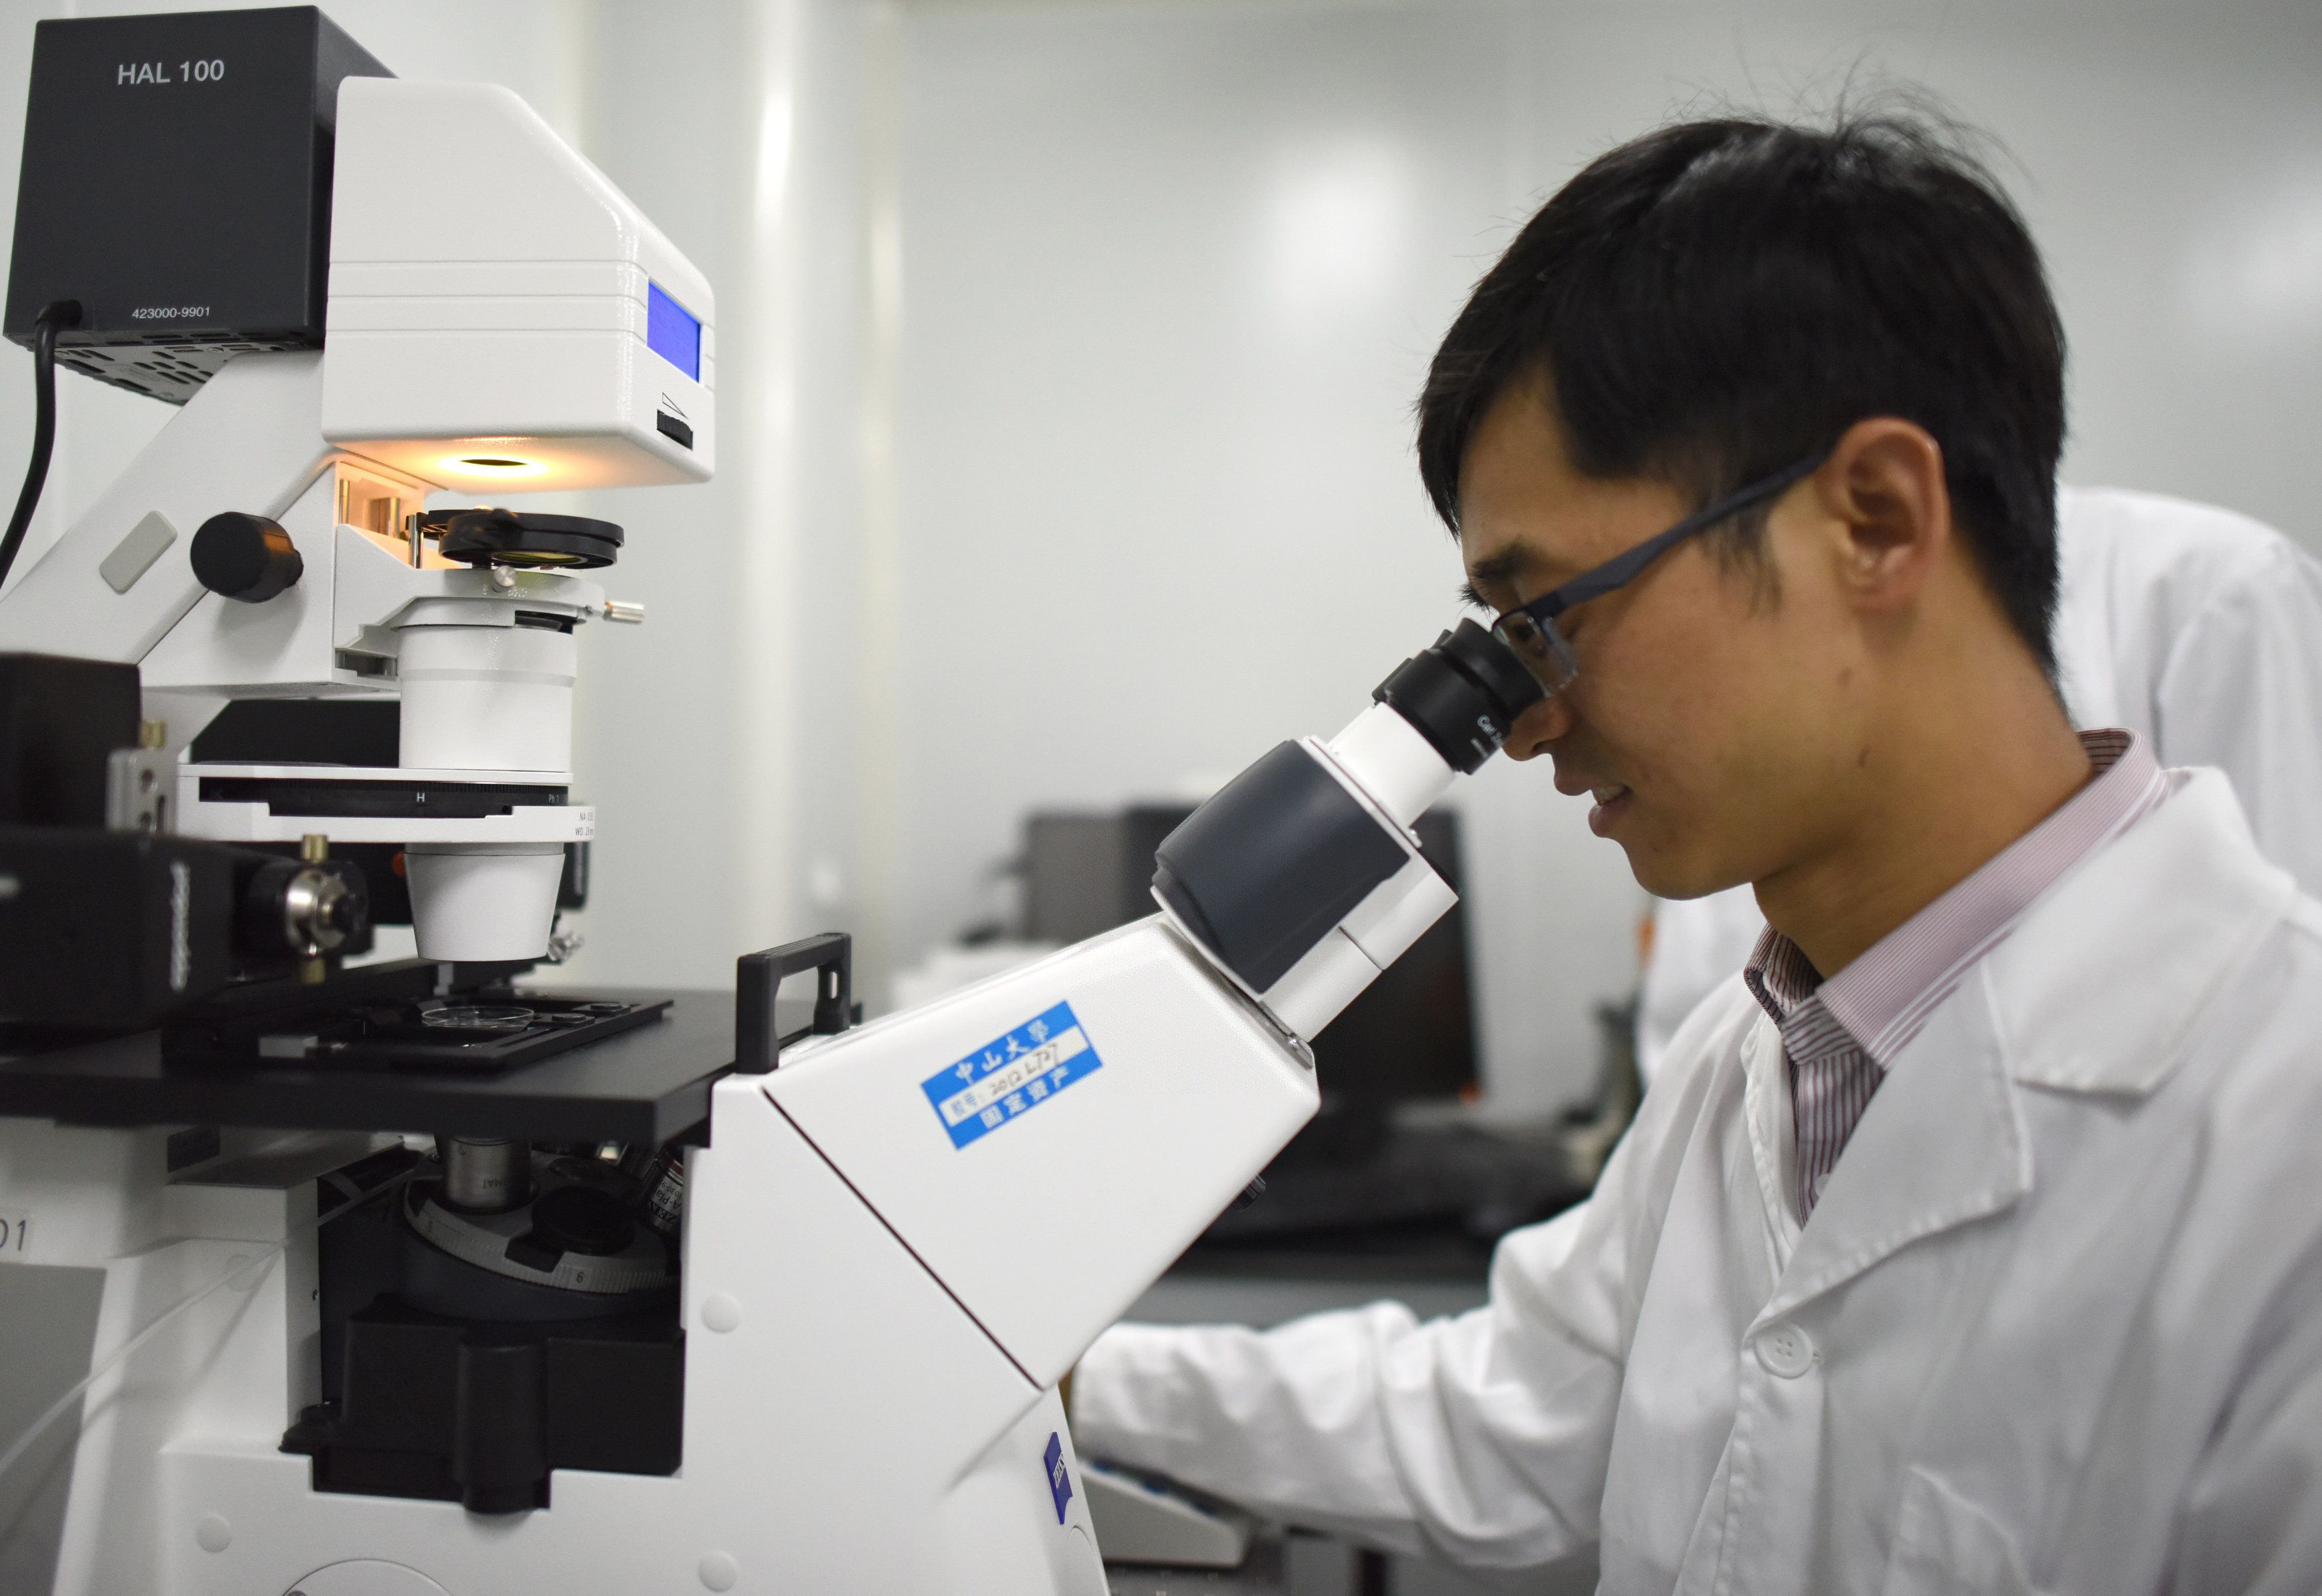 GUANGZHOU, April 7, 2016-- Associate Prefessor Huang Junjiu, also a gene-function researcher, makes experiments at Sun Yat-sen University in Guangzhou, capital of south China's Guangdong Province, April 2, 2016. In April of 2015, biologist Huang Junjiu published the first report of a human embryo with edited genes, sparking a global debate on the ethics of such research. In his study, Huang and his team used spare embryos from fertility clinics that could not progress to a live birth, and modified the gene, responsible for a kind of blood disorder, in the embryos. To accomplish the task, they adopted a powerful technique known as CRISPR-Cas9, which can be programmed to precisely alter DNA at specific sequences. (Xinhua/Lu Hanxin via Getty Images)